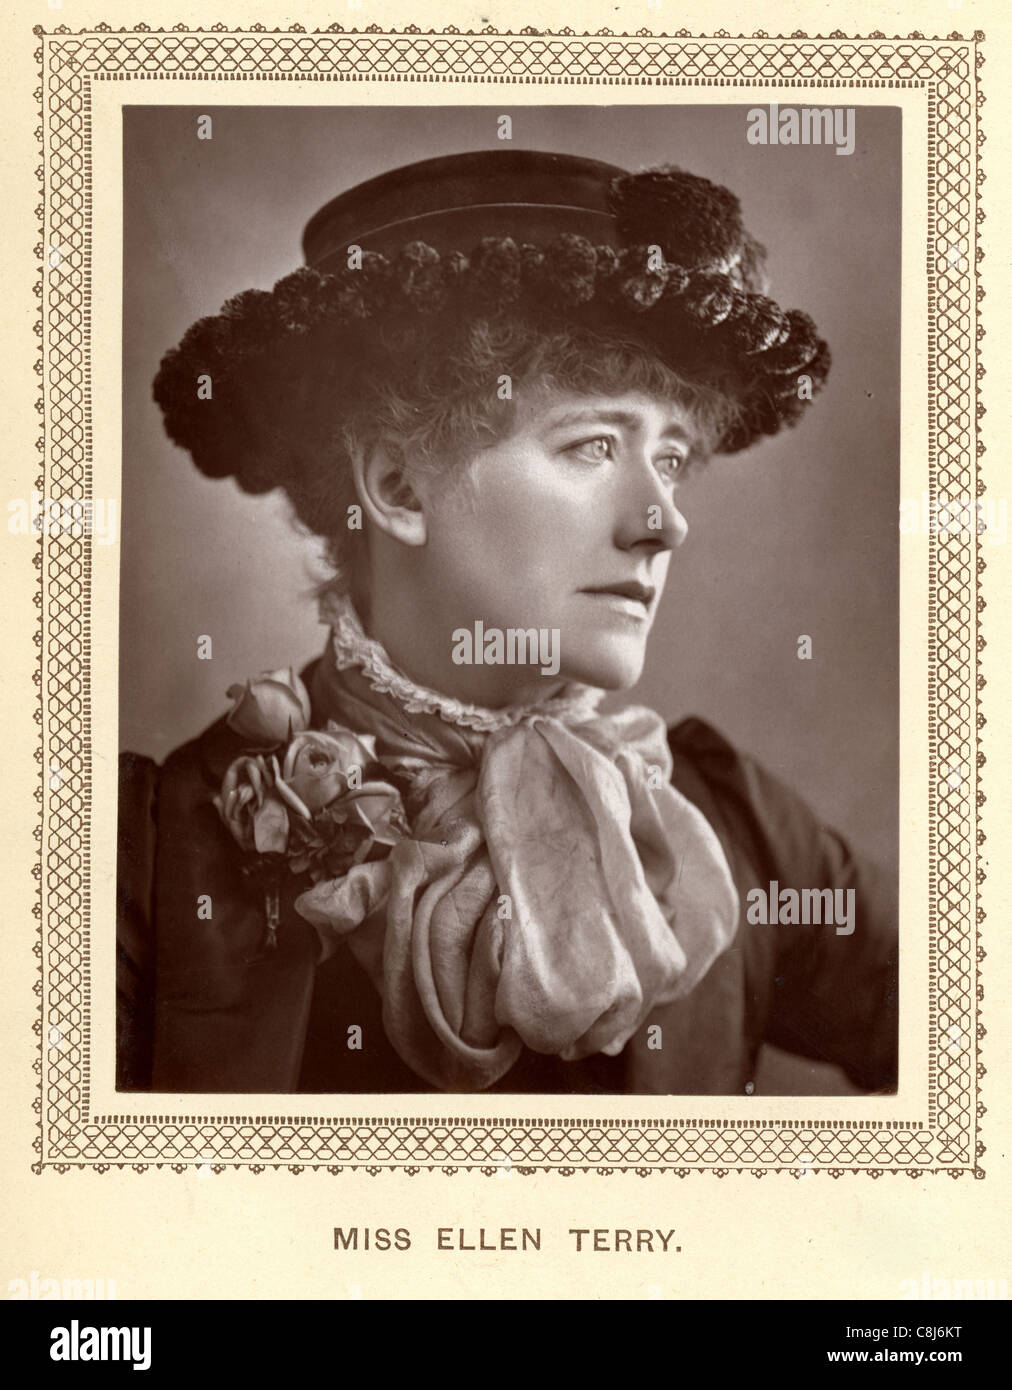 Vintage photograph from 1883 of Dame Ellen Terry an English stage actress who became a leading Shakespearean actress - Stock Image